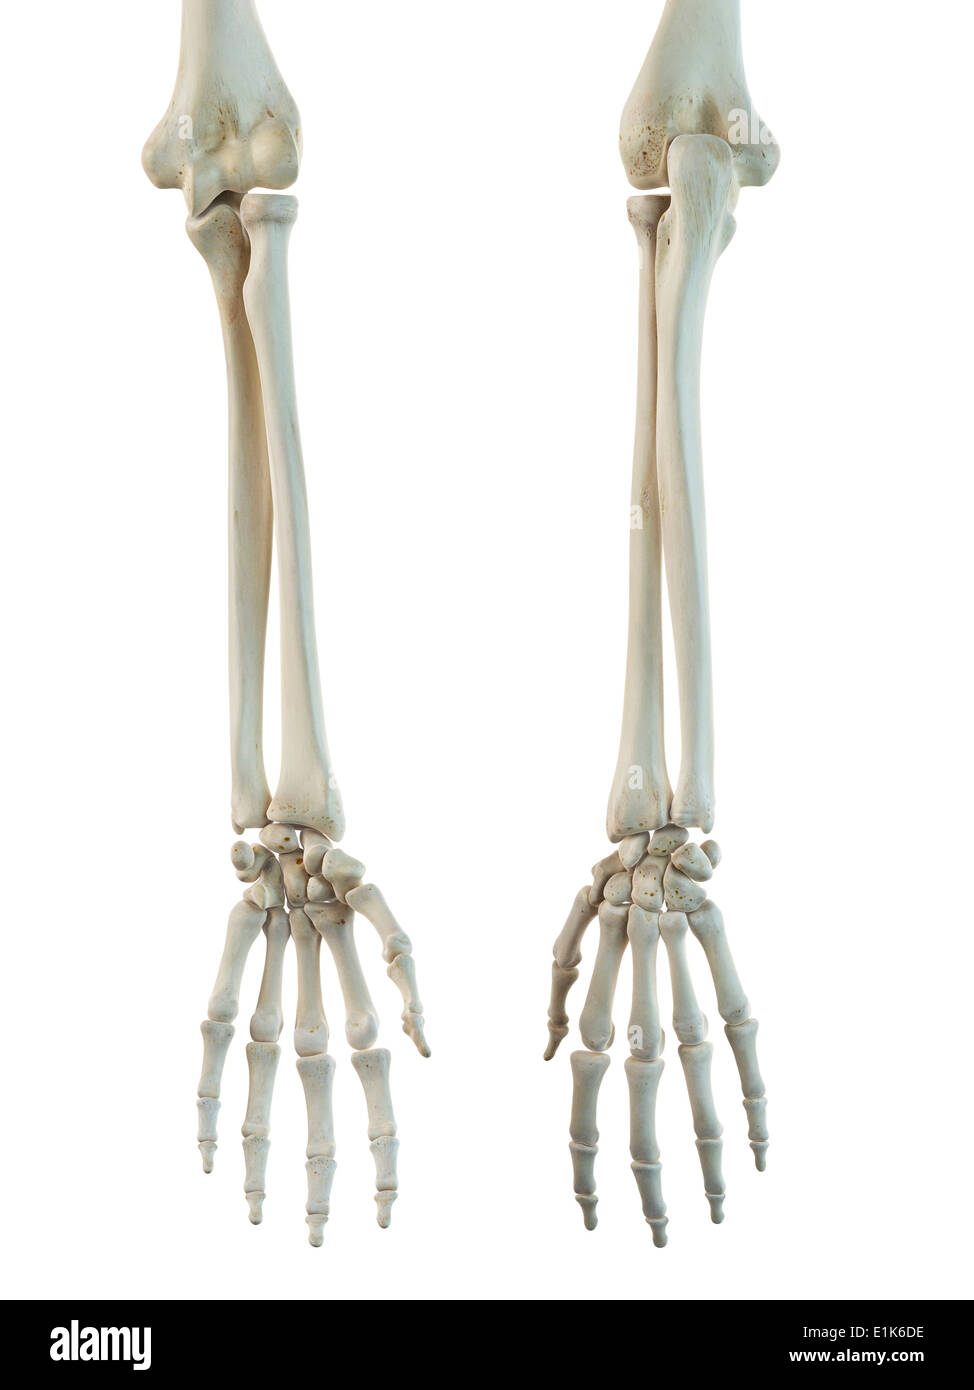 Human Bones In The Arms And Hands Computer Artwork Stock Photo